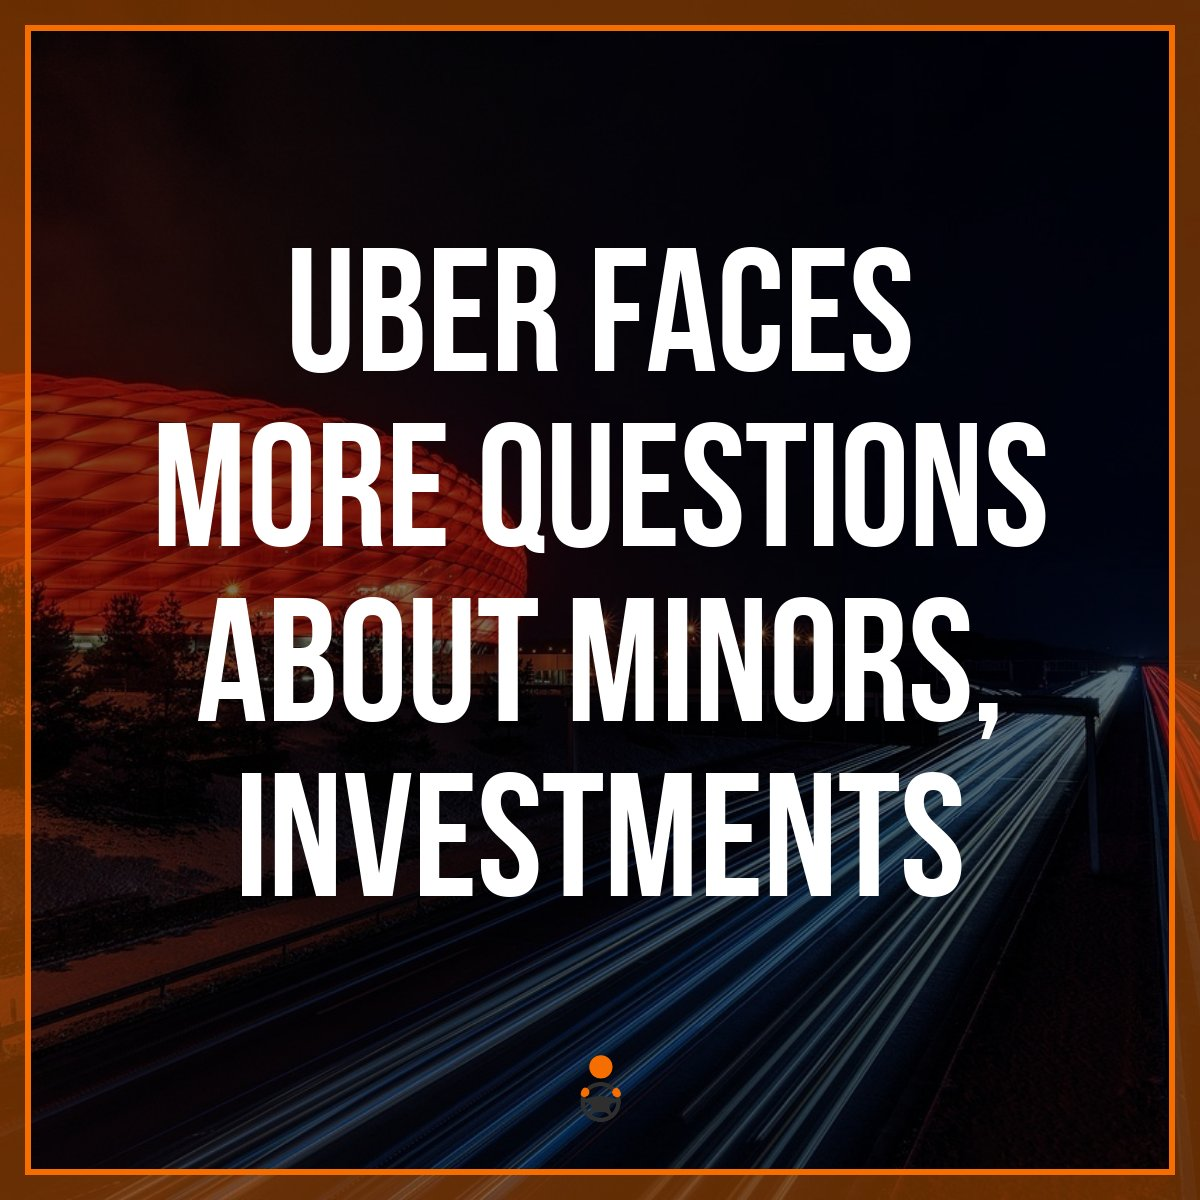 Uber Faces More Questions about Minors, Investments